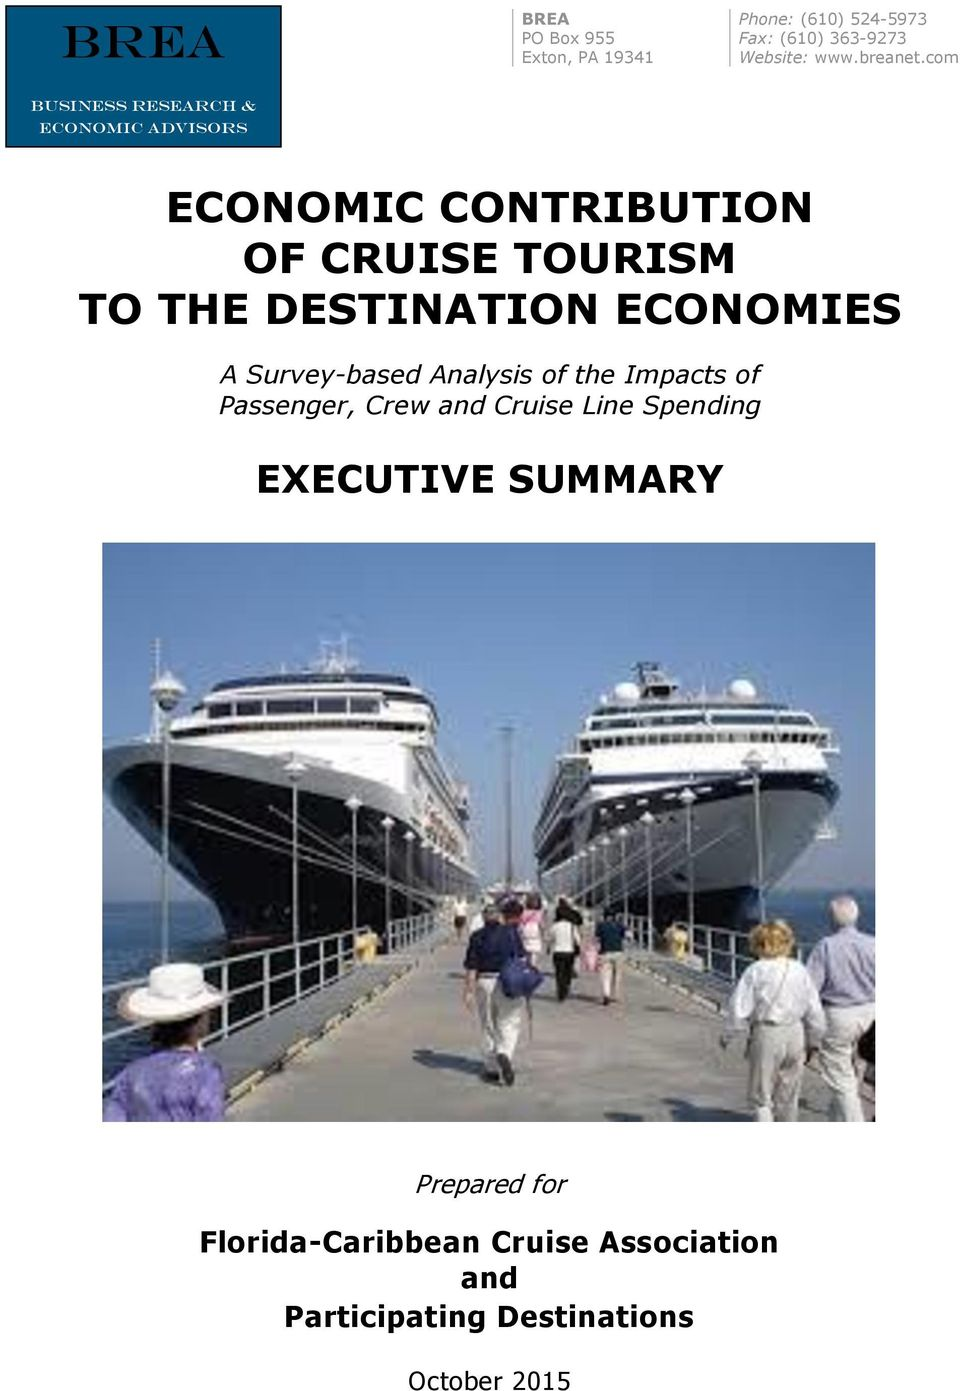 ECONOMIES A Survey-based Analysis of the Impacts of Passenger, Crew and Cruise Line Spending